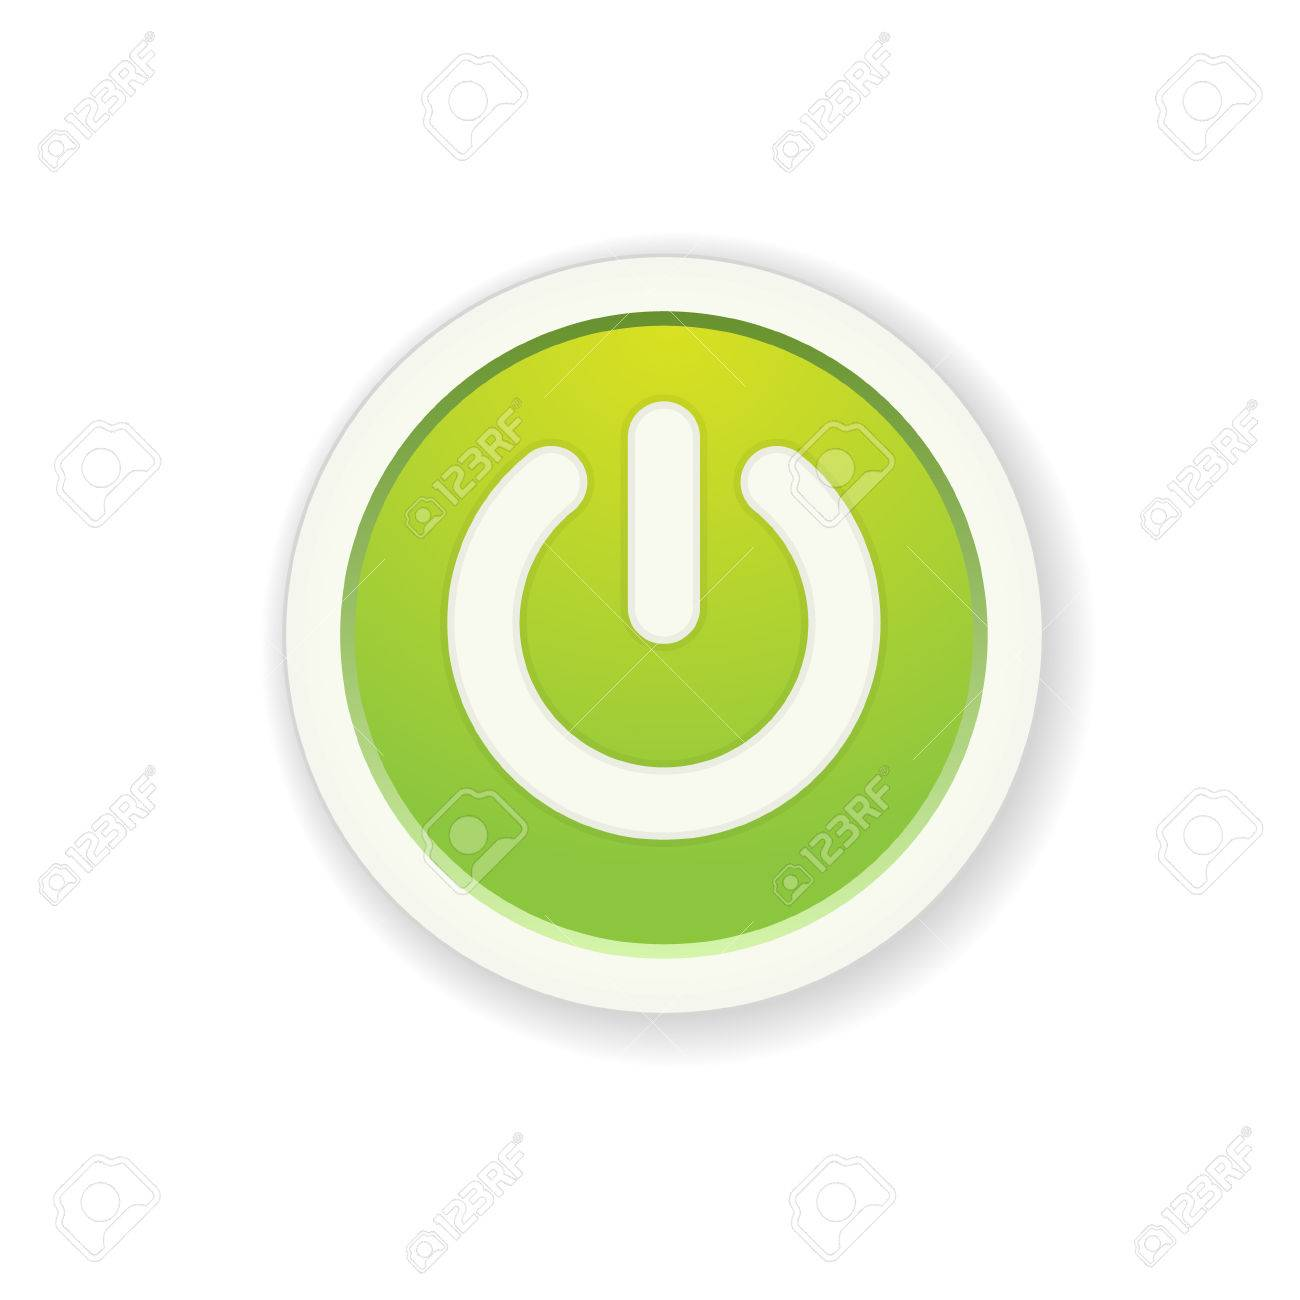 The green circle button with standby icon royalty free cliparts the green circle button with standby icon stock vector 25984047 biocorpaavc